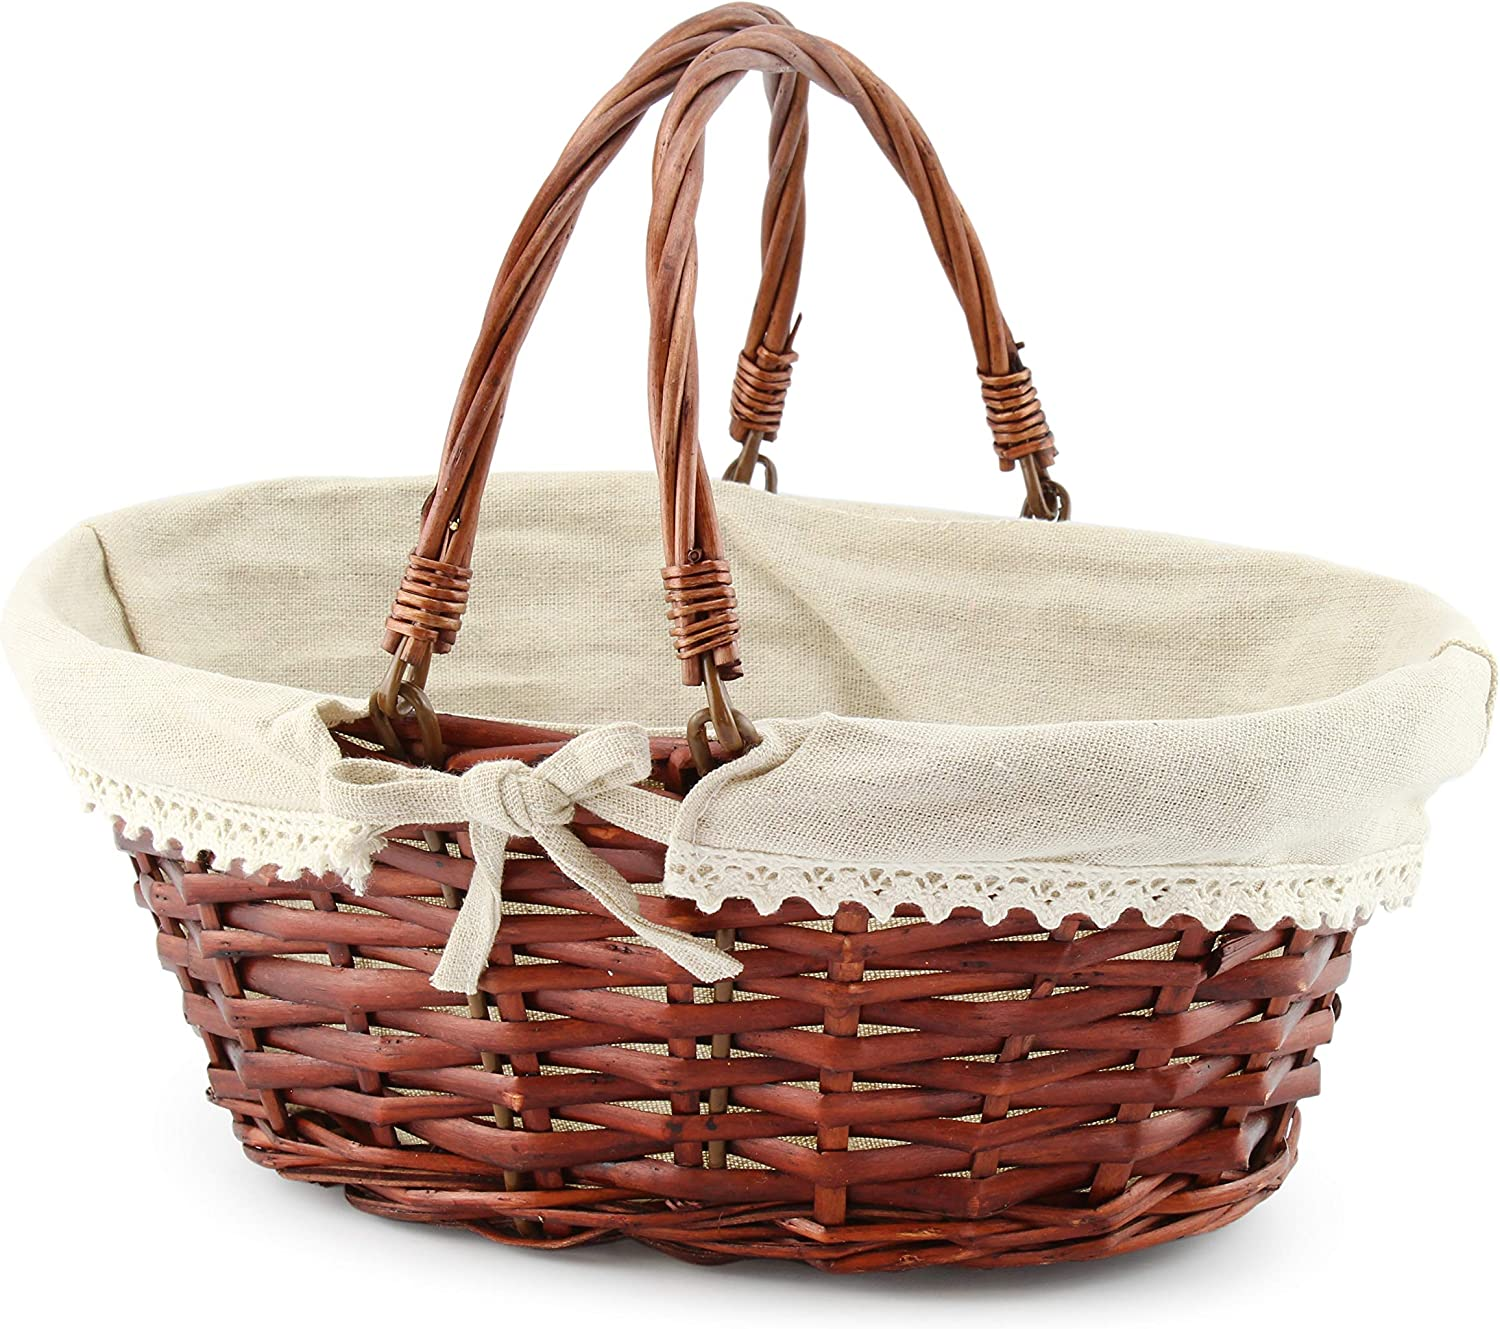 Cornucopia Wicker Basket with Handles (Reddish Brown), for Fall Decor, Easter, Picnics, Gifts, Home Decor and More, 13 x 10 x 6 Inches…